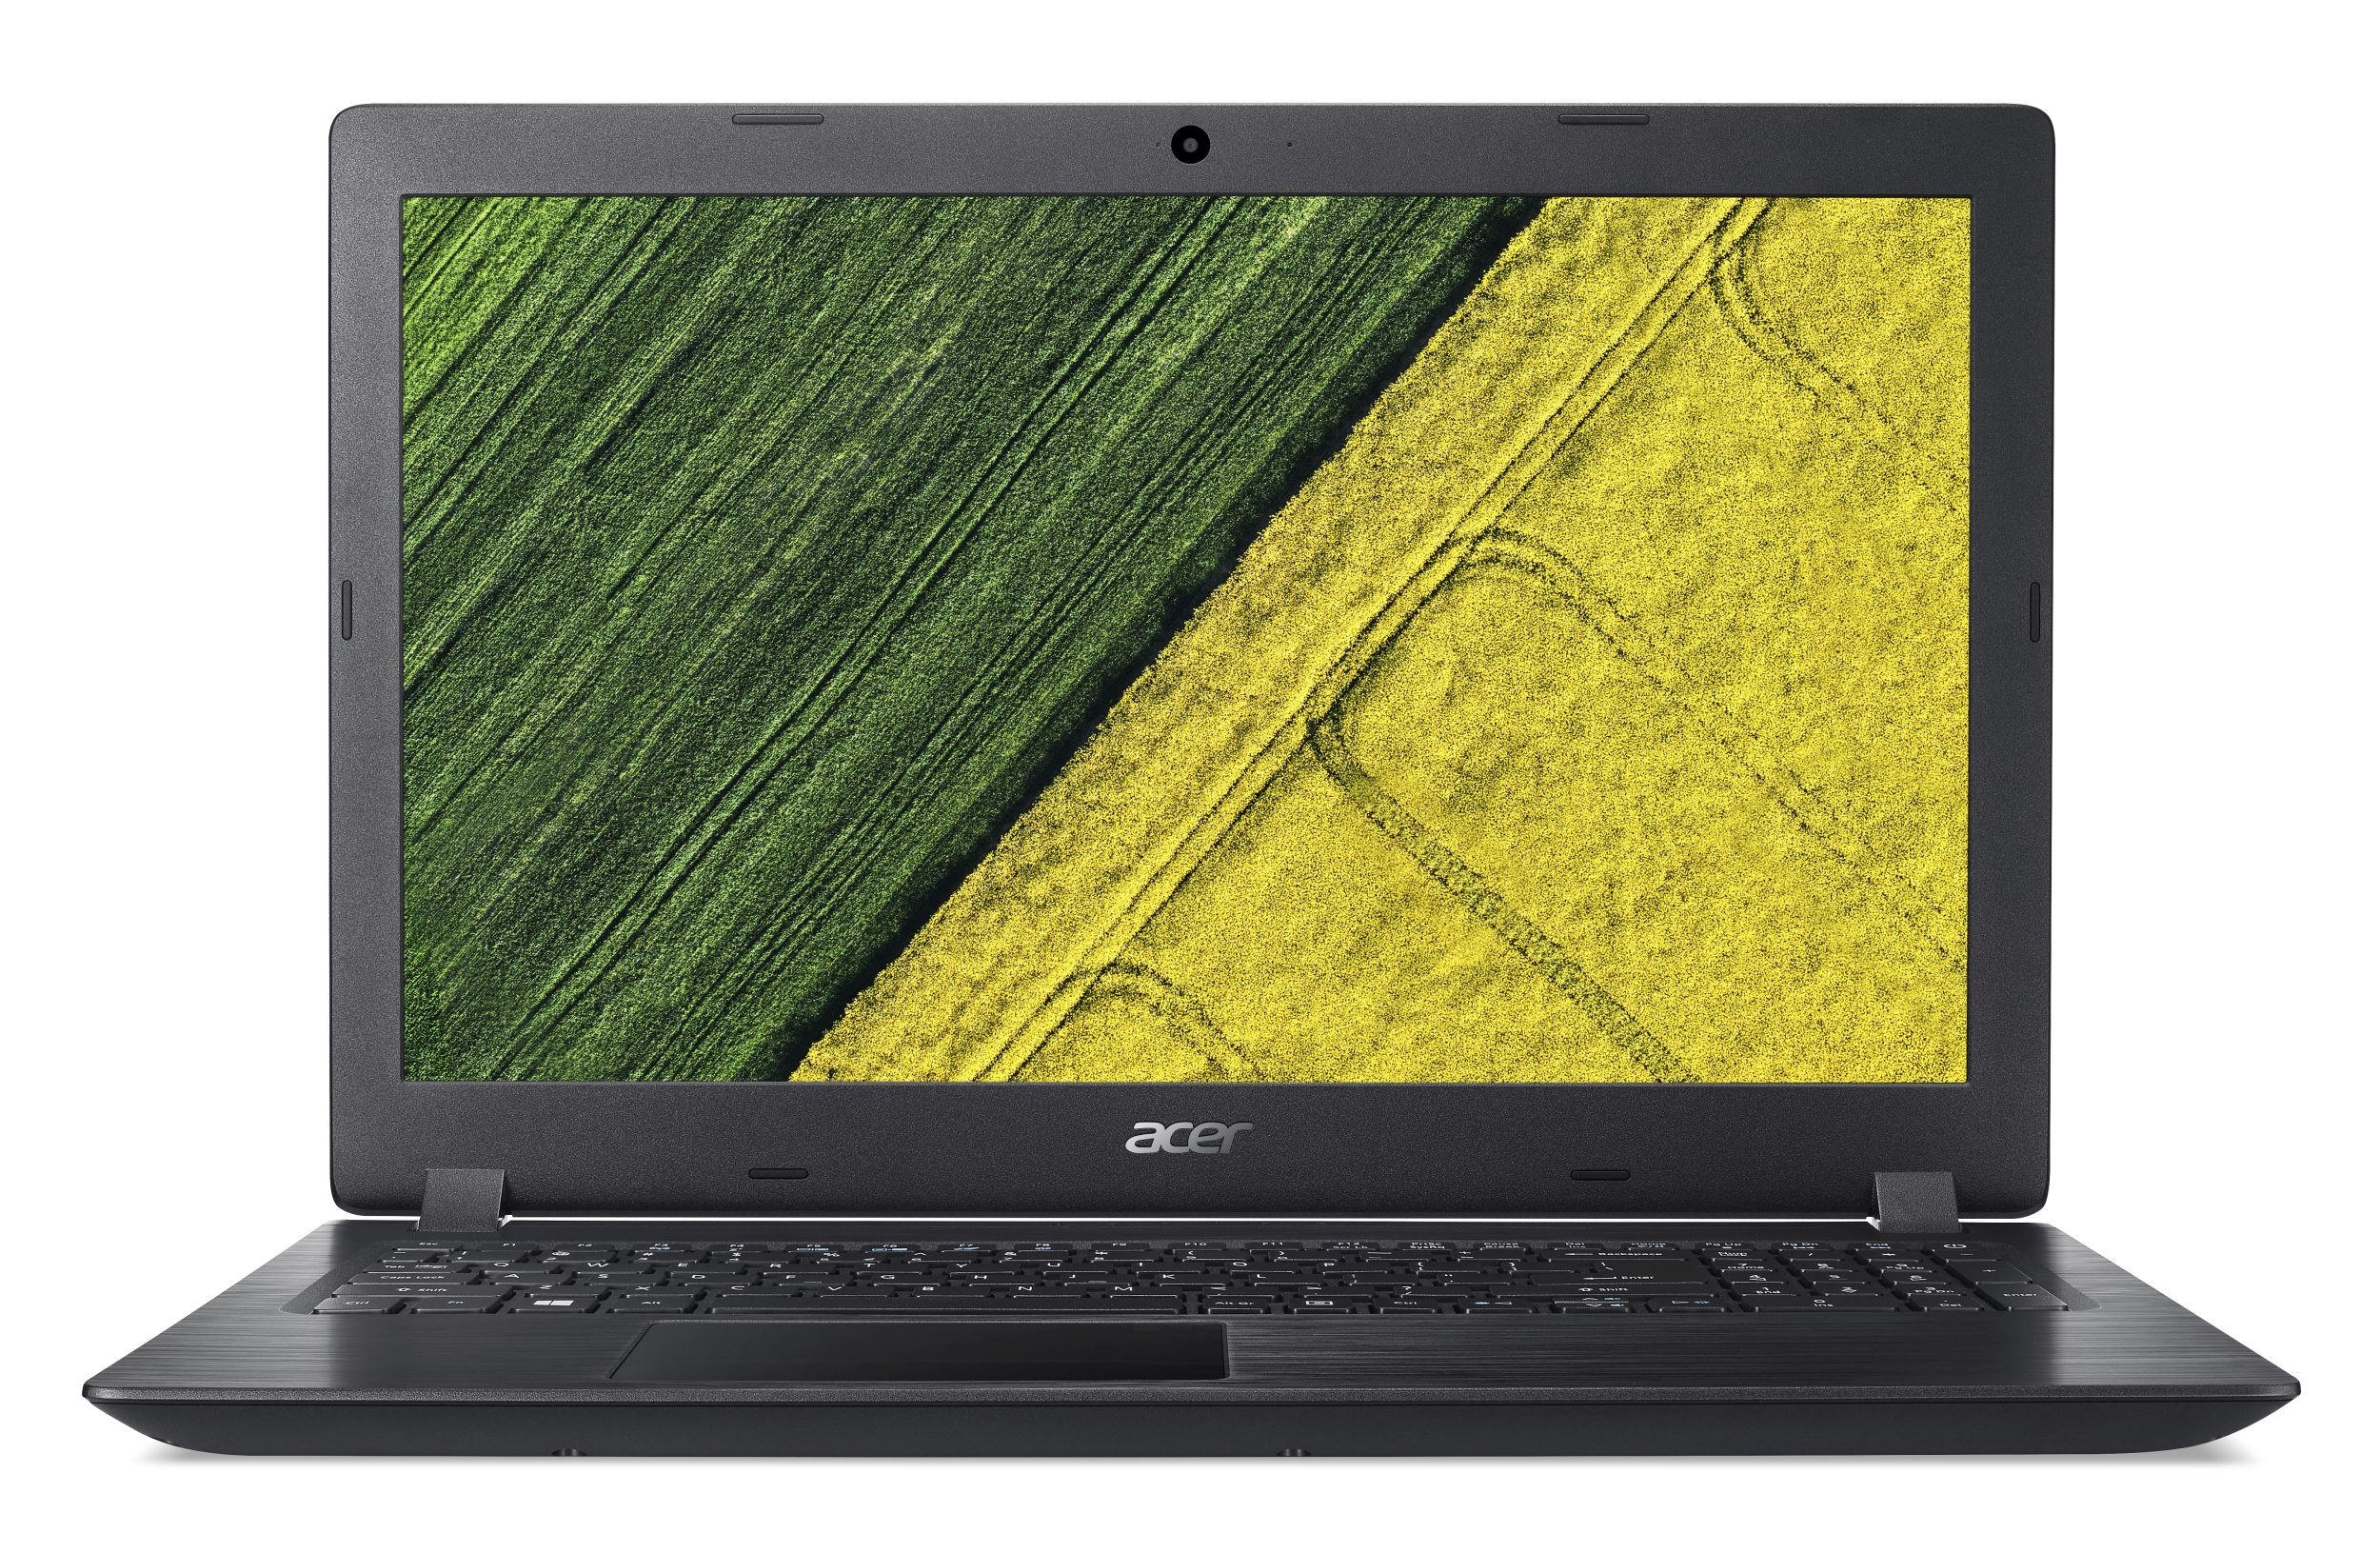 "Acer Aspire 3 (A315-31-C4UF) Celeron N3350/4GB/128 GB SSD/HD Graphics/15,6"" FHD LED matný/BT/W10 Home/Black"